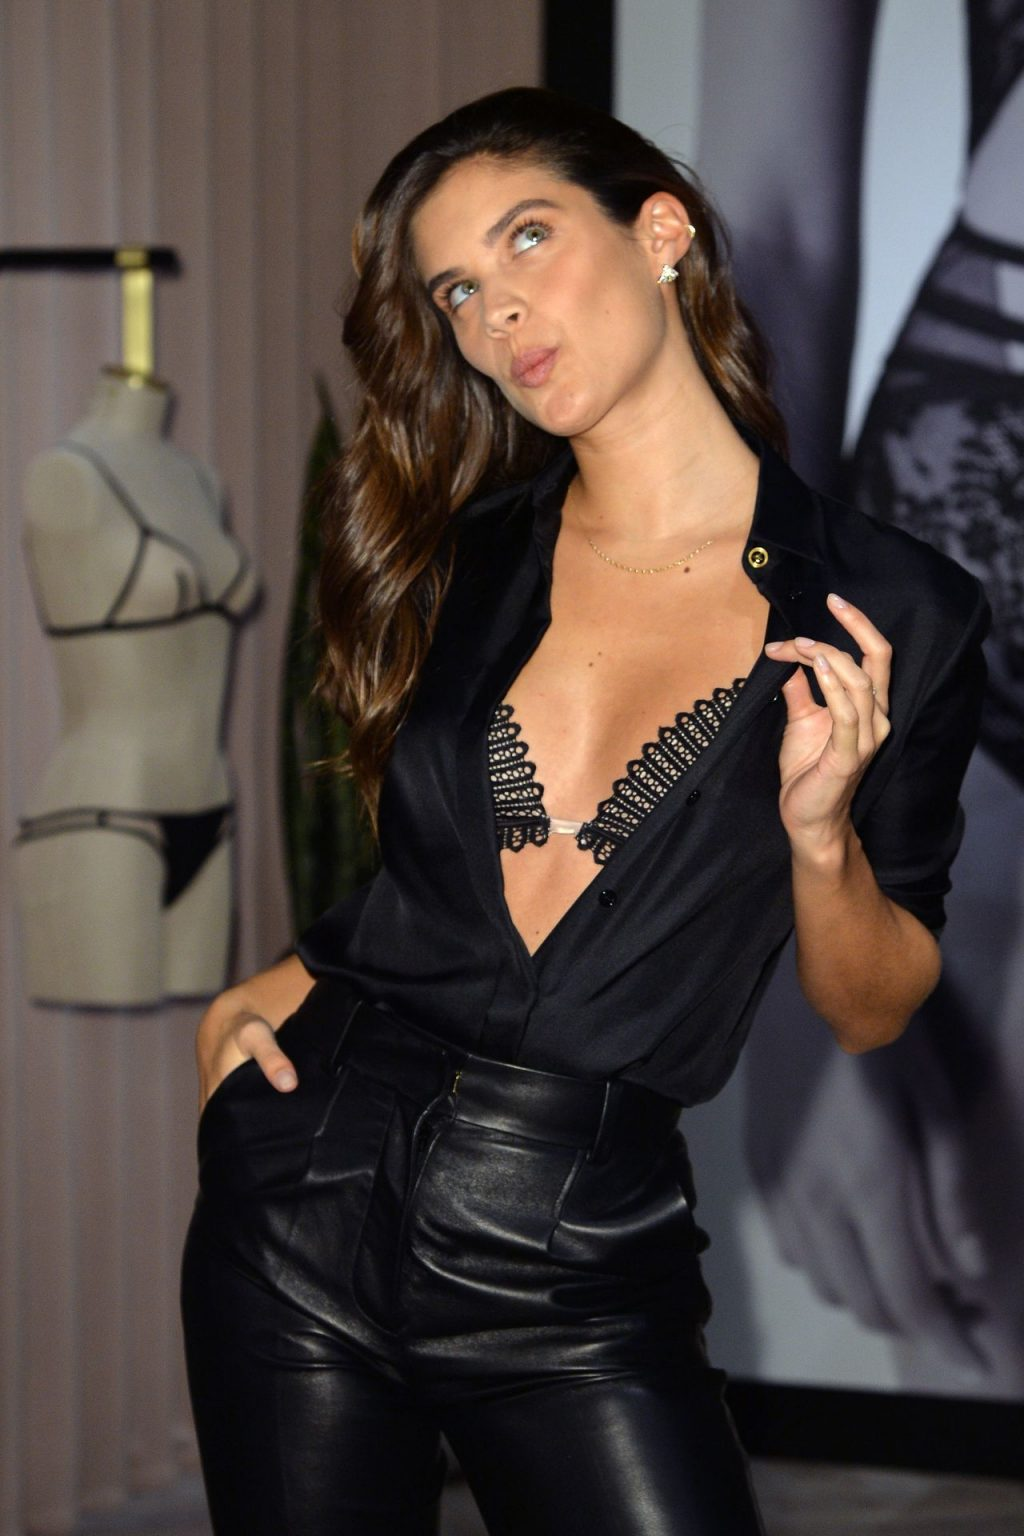 Sara Sampaio - Launch of LIVY at Victoria's Secret in New York City - 02/12/2019